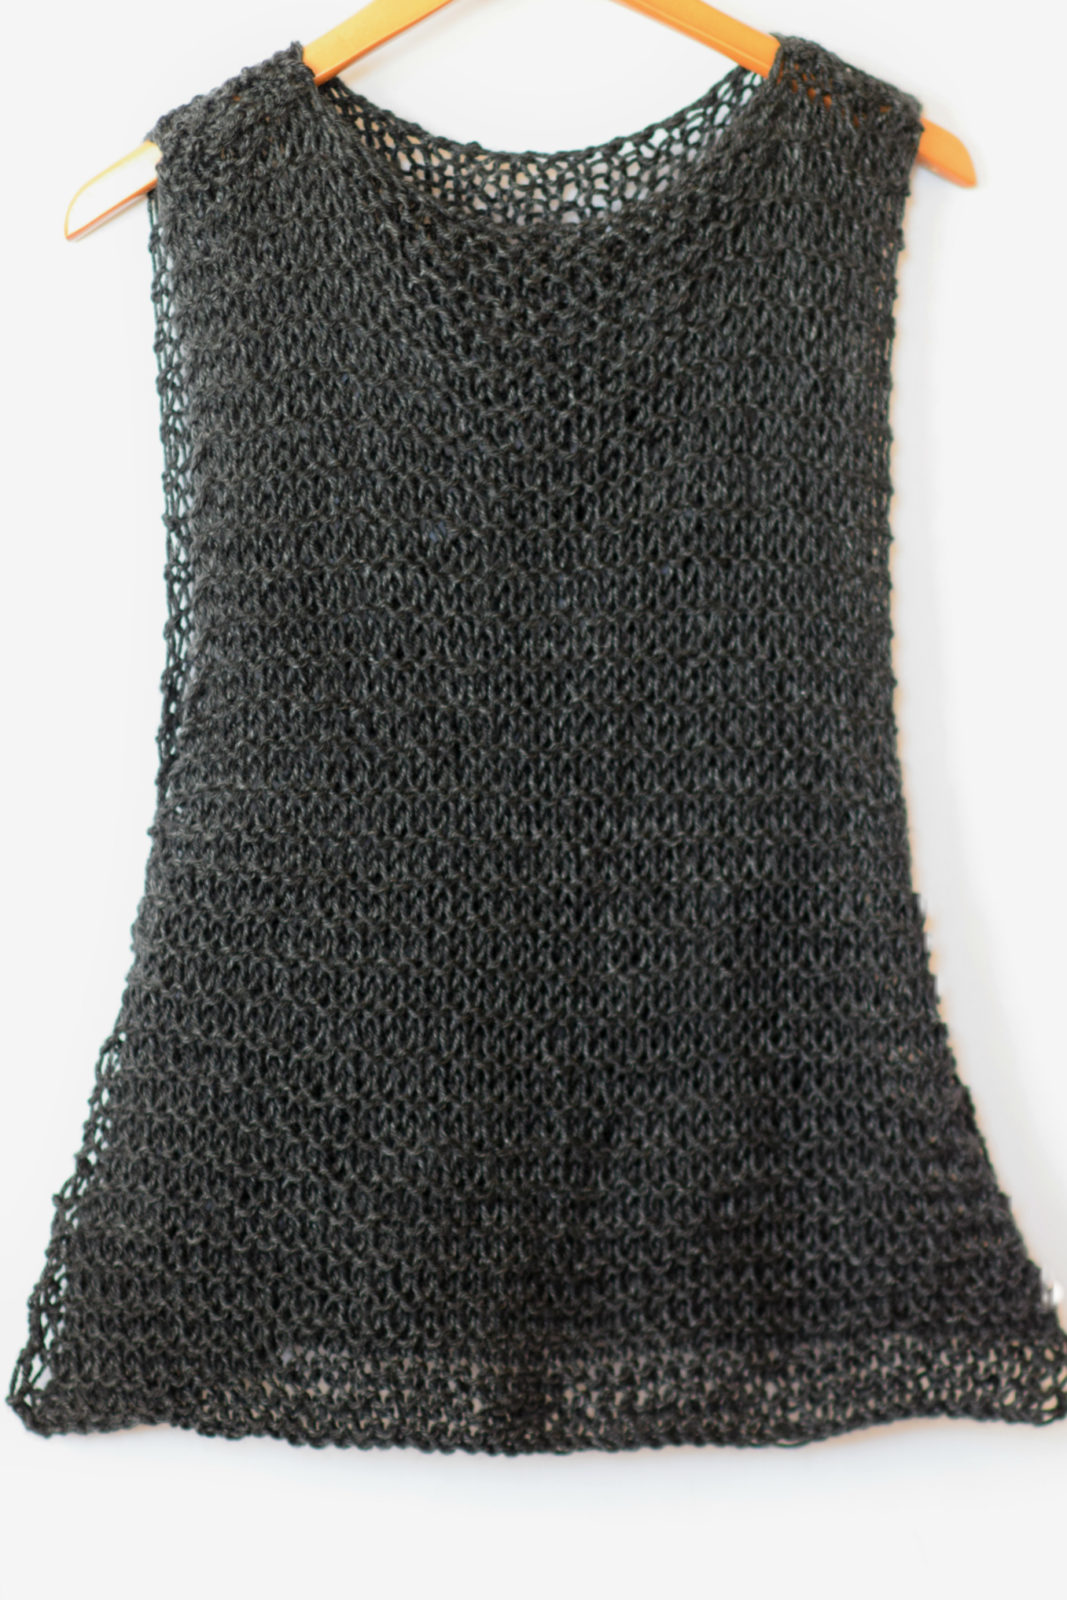 Easy Little Black Tank Top Knitting Pattern Mama In A Stitch